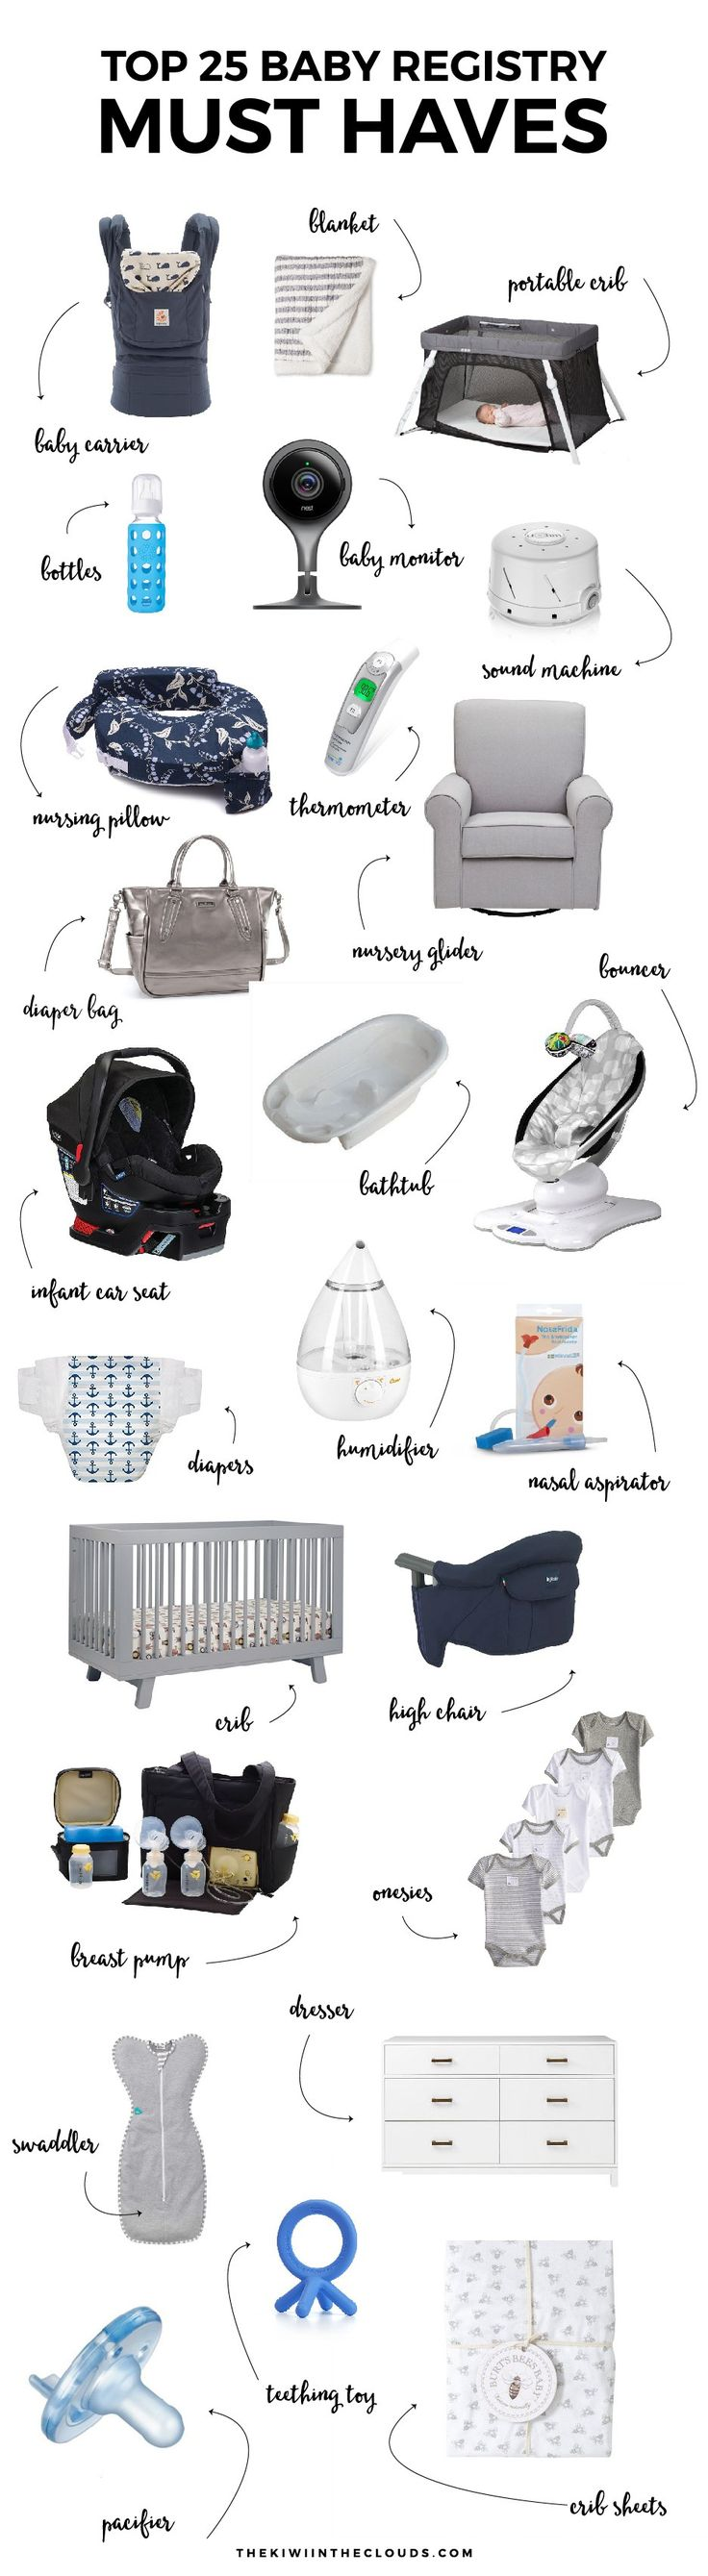 Creating the perfect registry can be overwhelming, time consuming and costly. Skip the mistakes of a first time mom and discover what baby items you actually need!